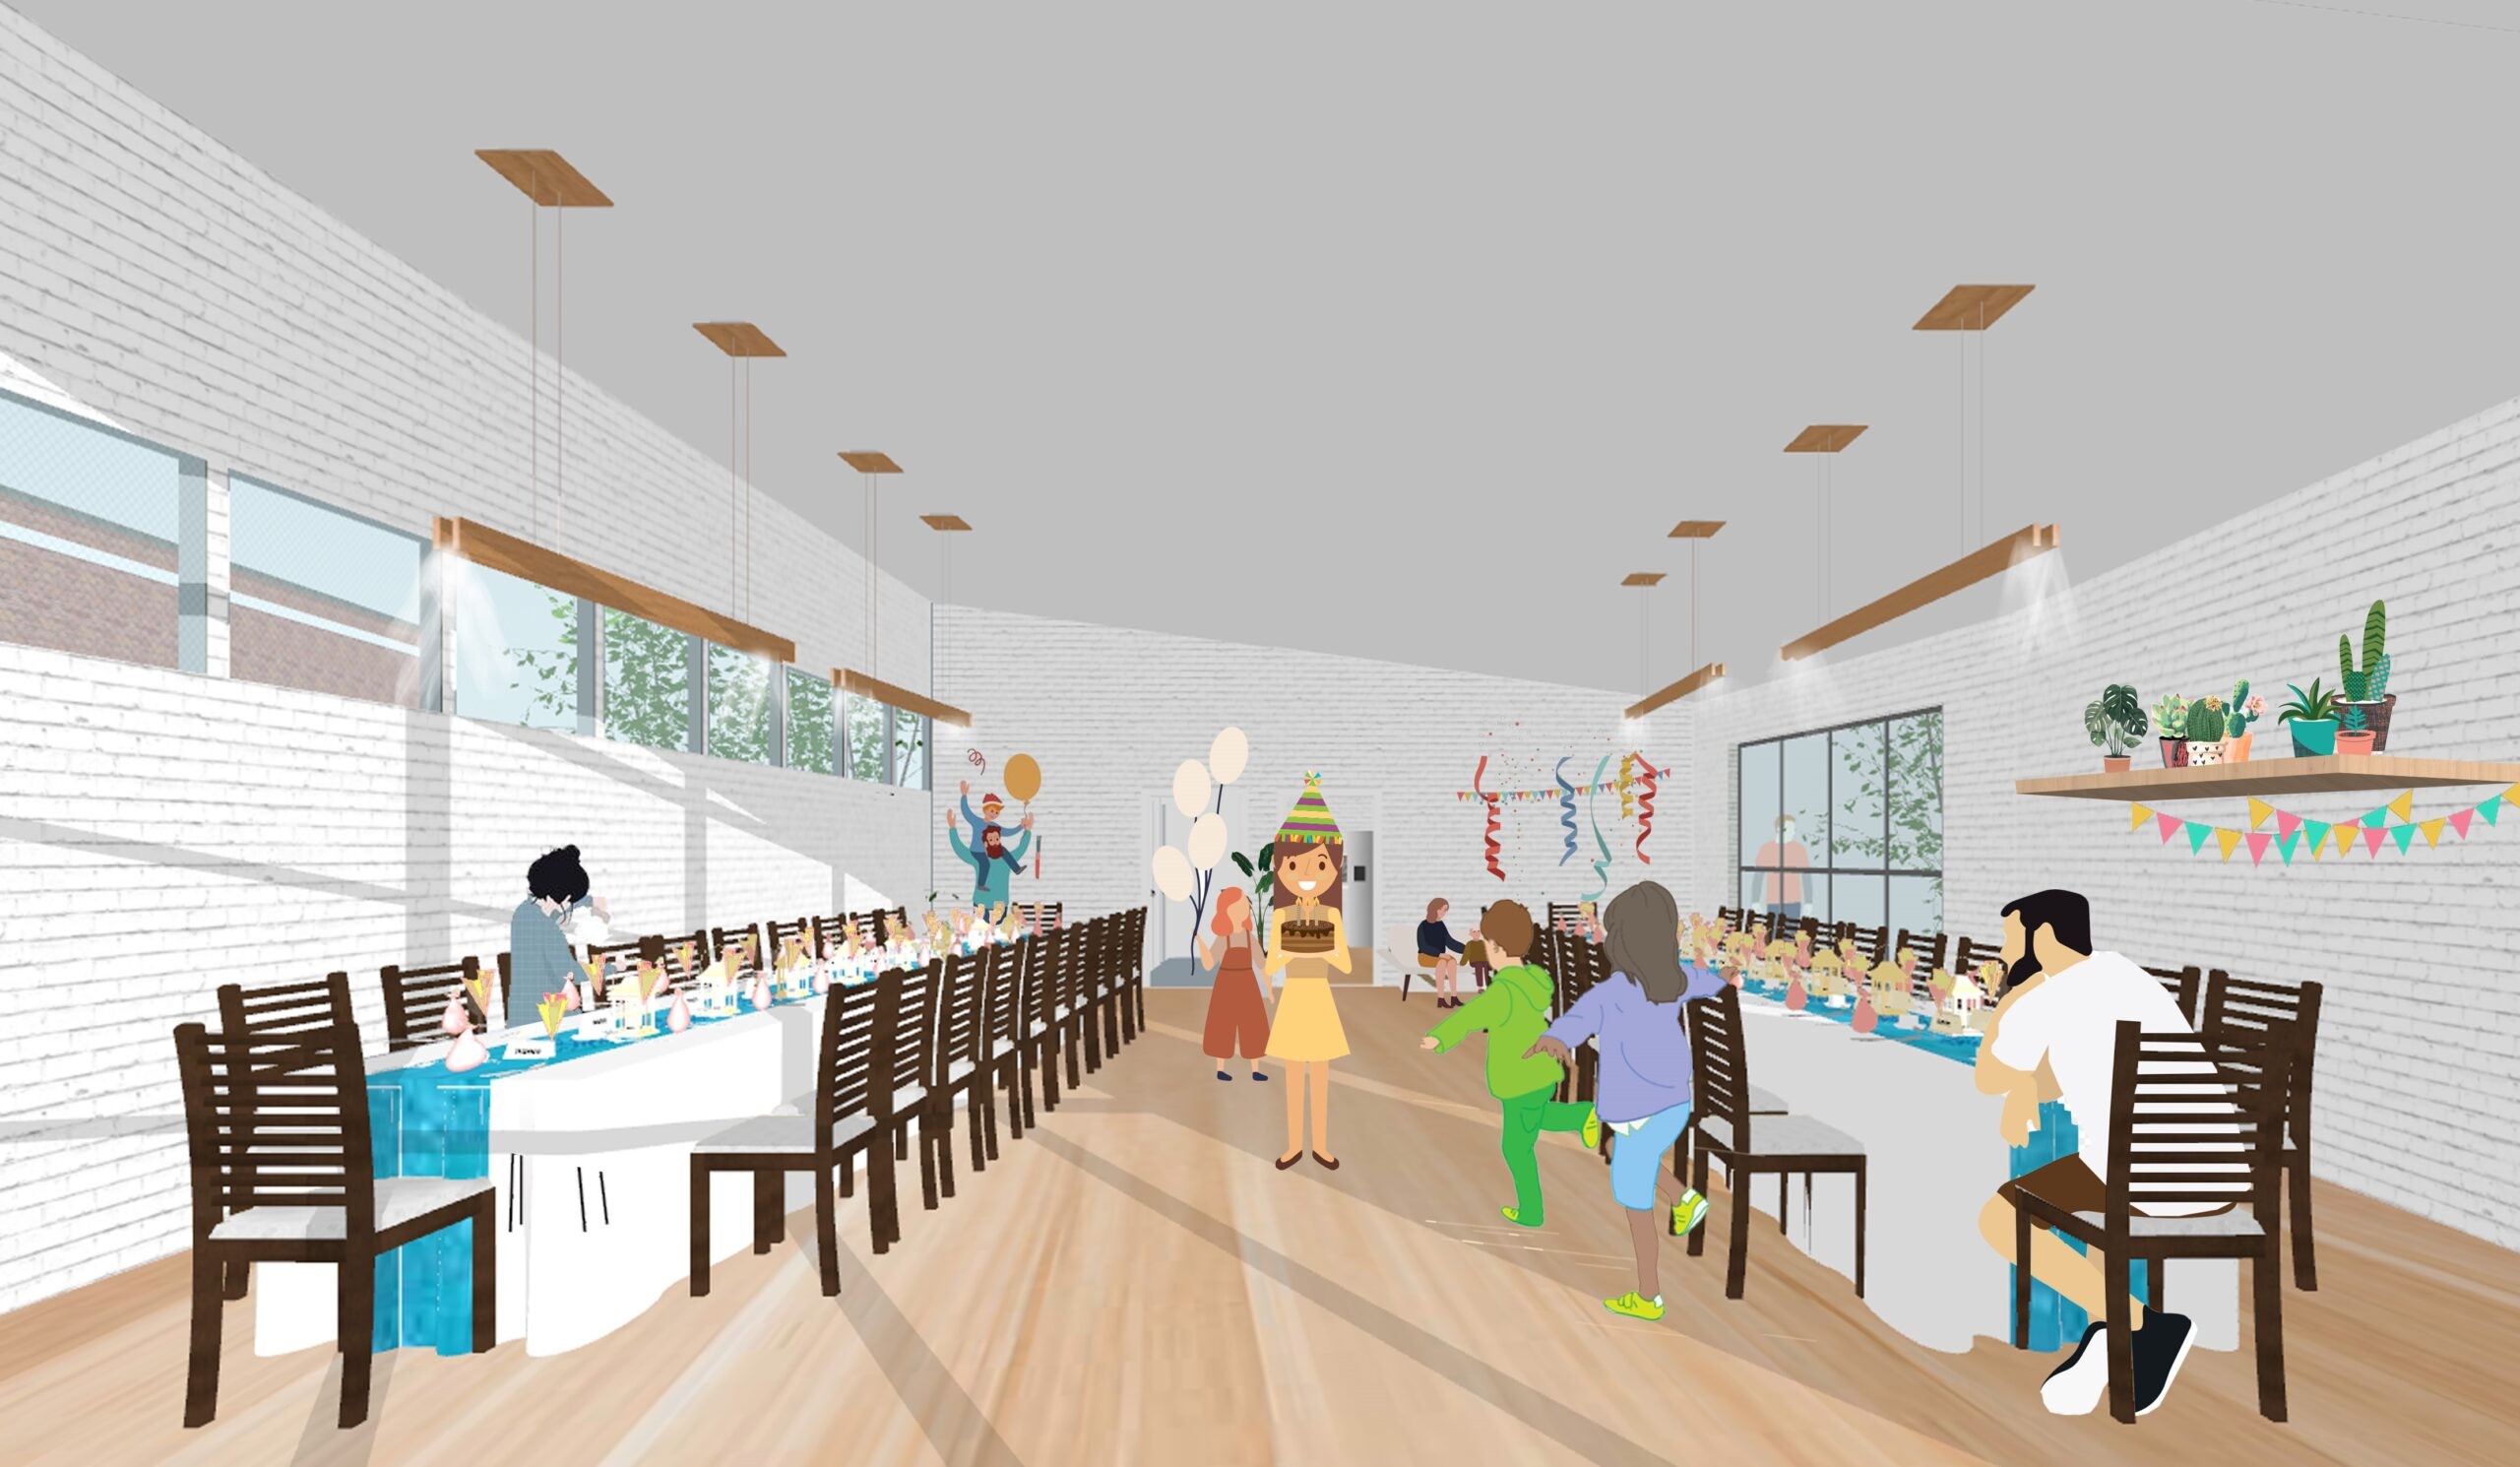 Person depicated in the centre of the image, tables to either side of her illustrating the setting of the cafe